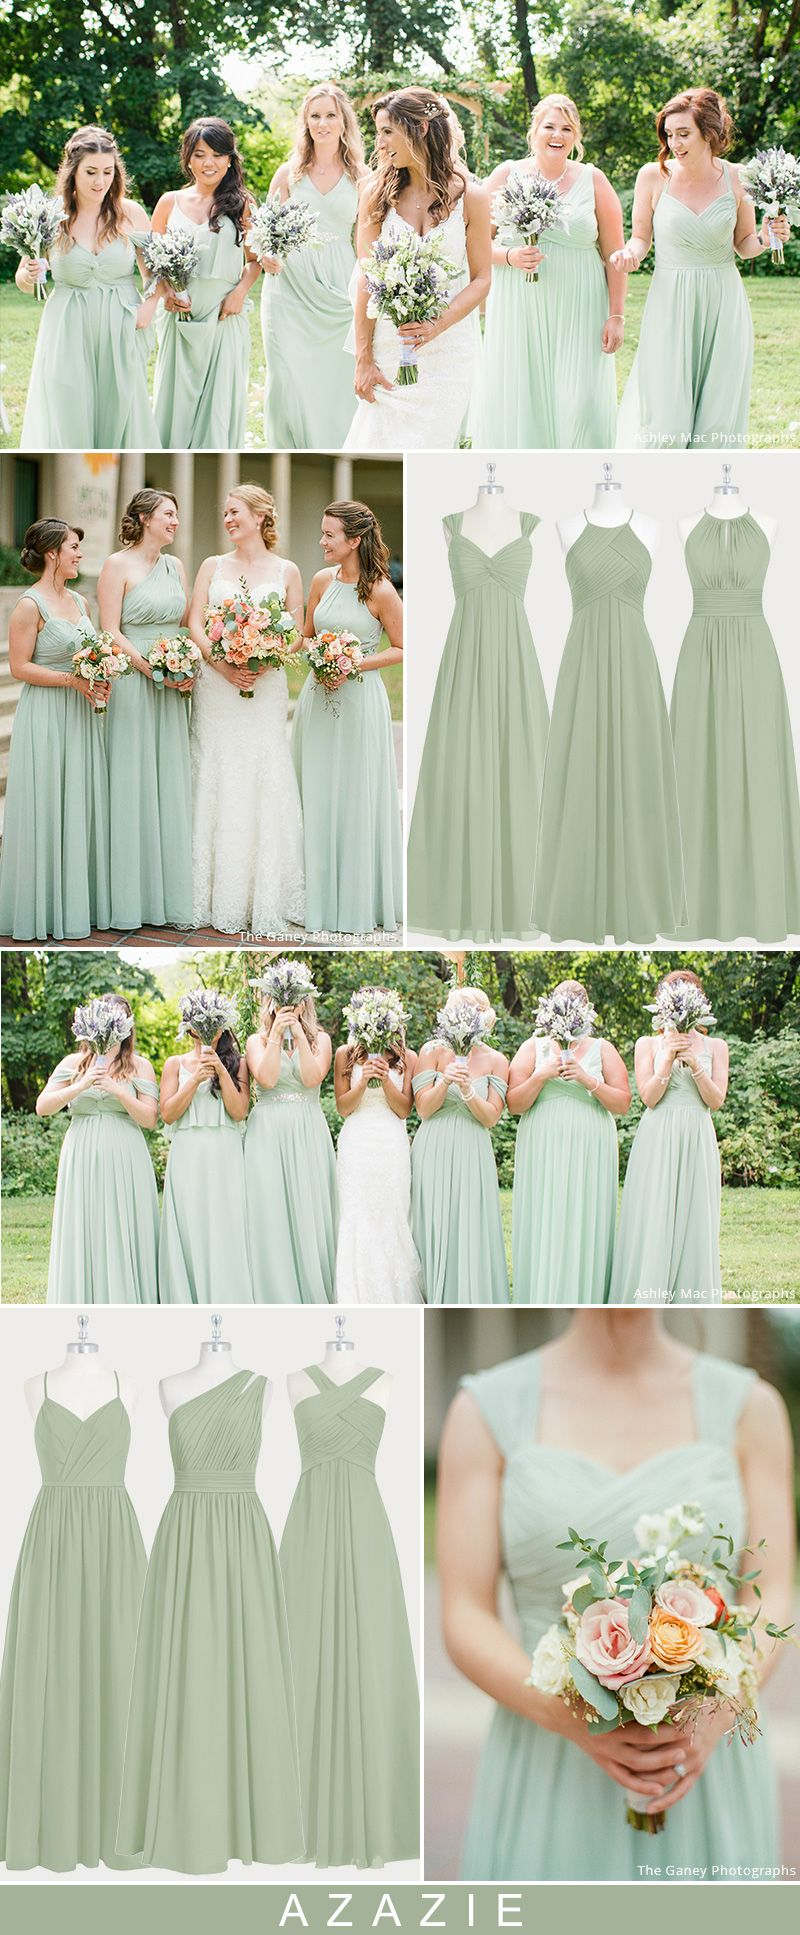 Azazie Dusty Sage Bridesmaid Dresses - Real Wedding Inspirations